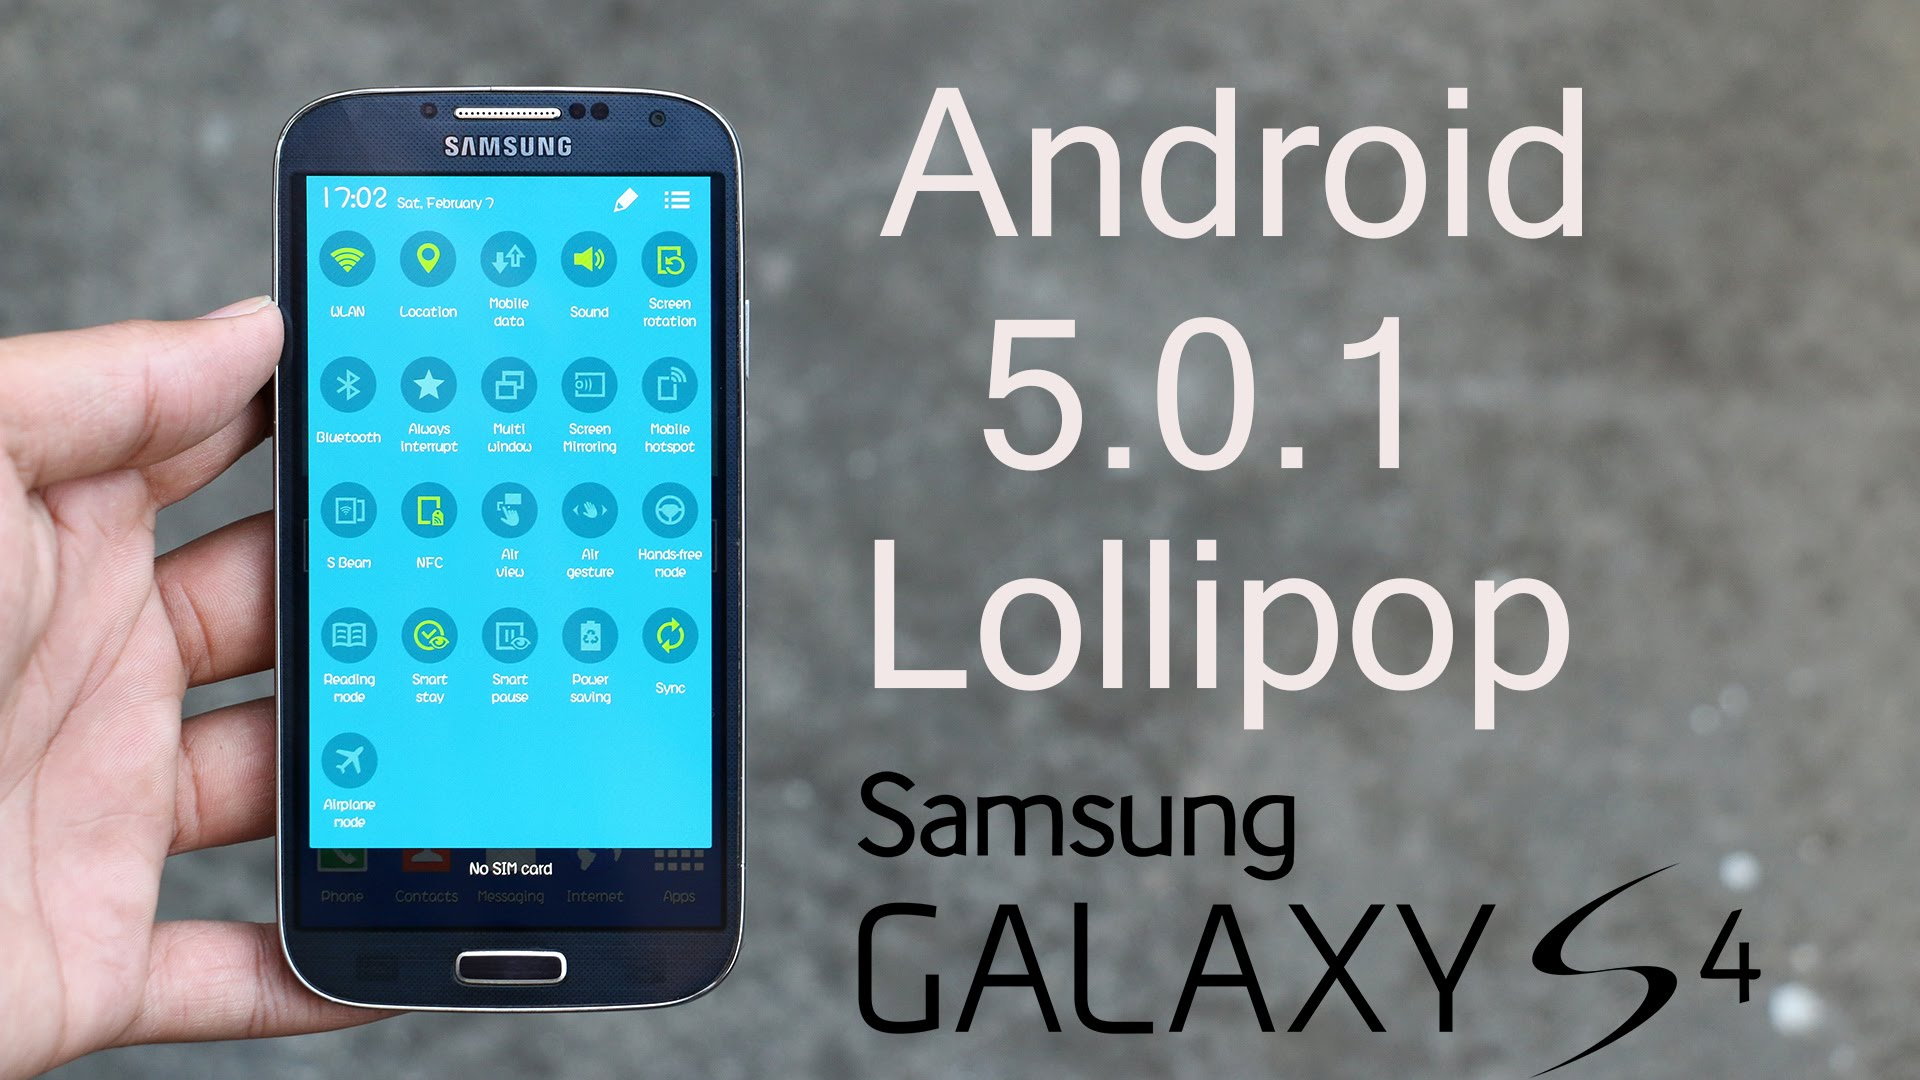 Photo of Samsung Galaxy S4 Android 5.0.1 Lollipop (I9500) Orjinal Rom Yükleme